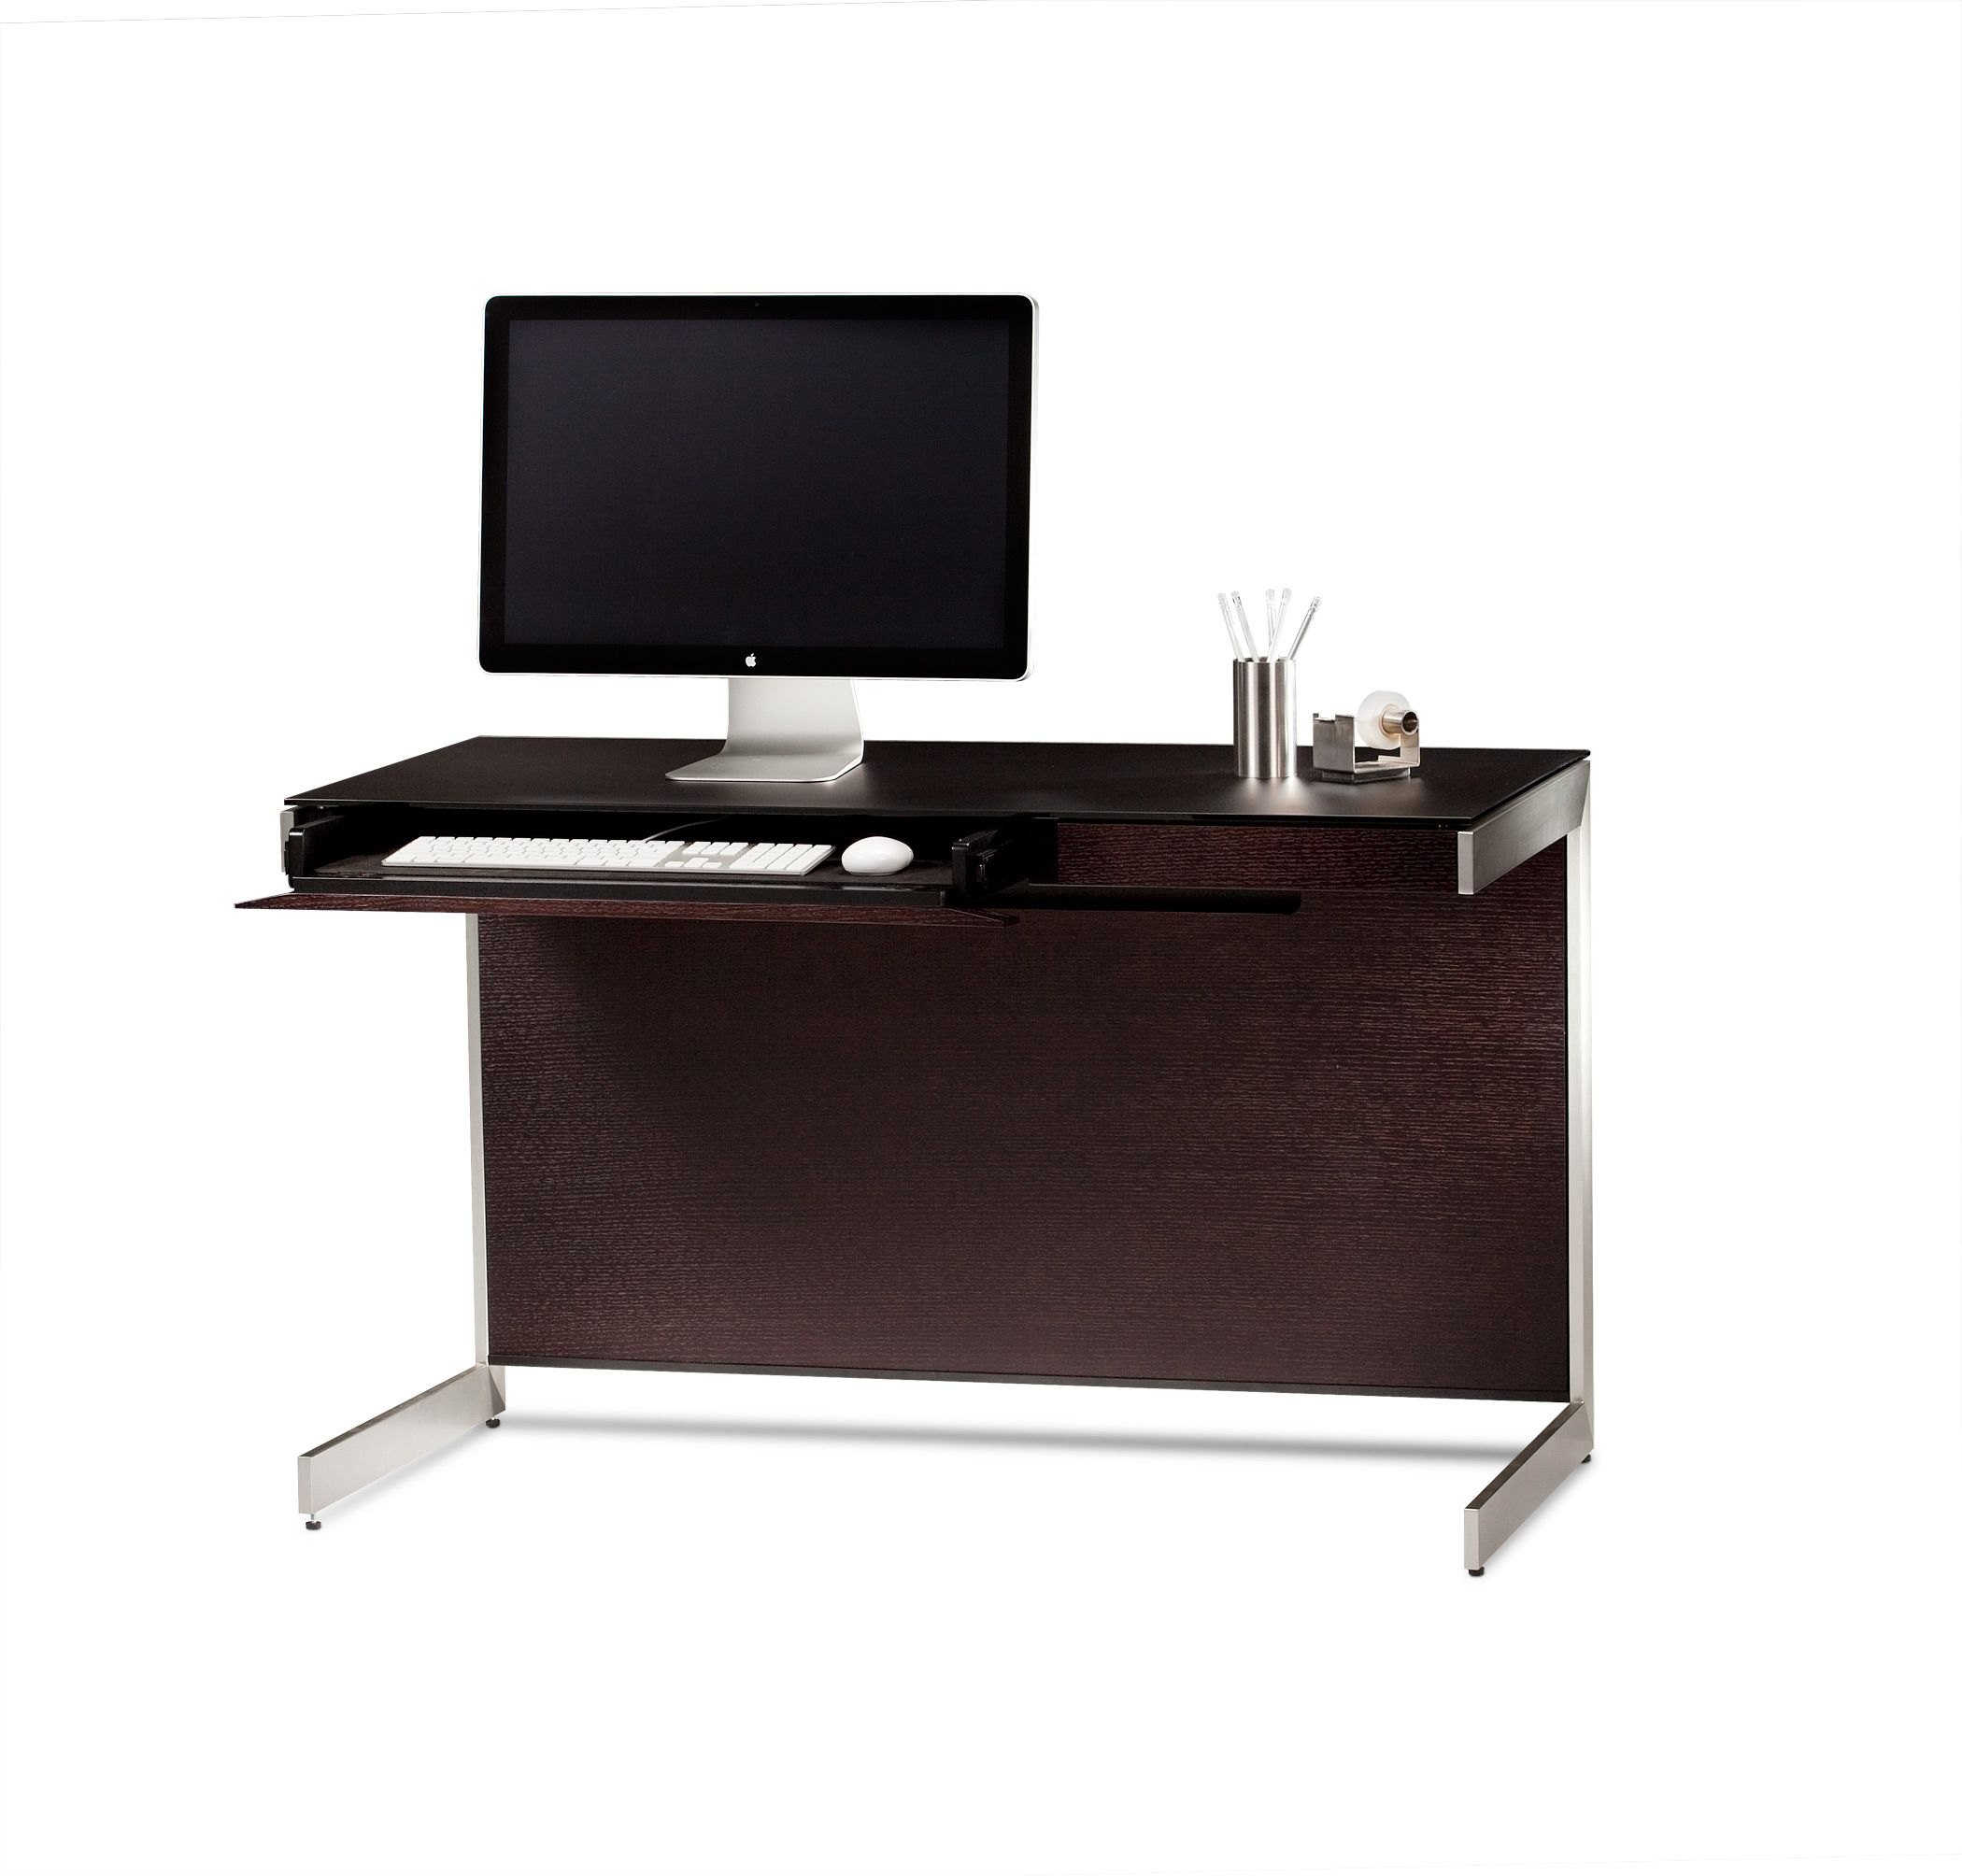 accessories stamford cupboard taupe cado black furniture ct desk toffee bdi modern duo angle office